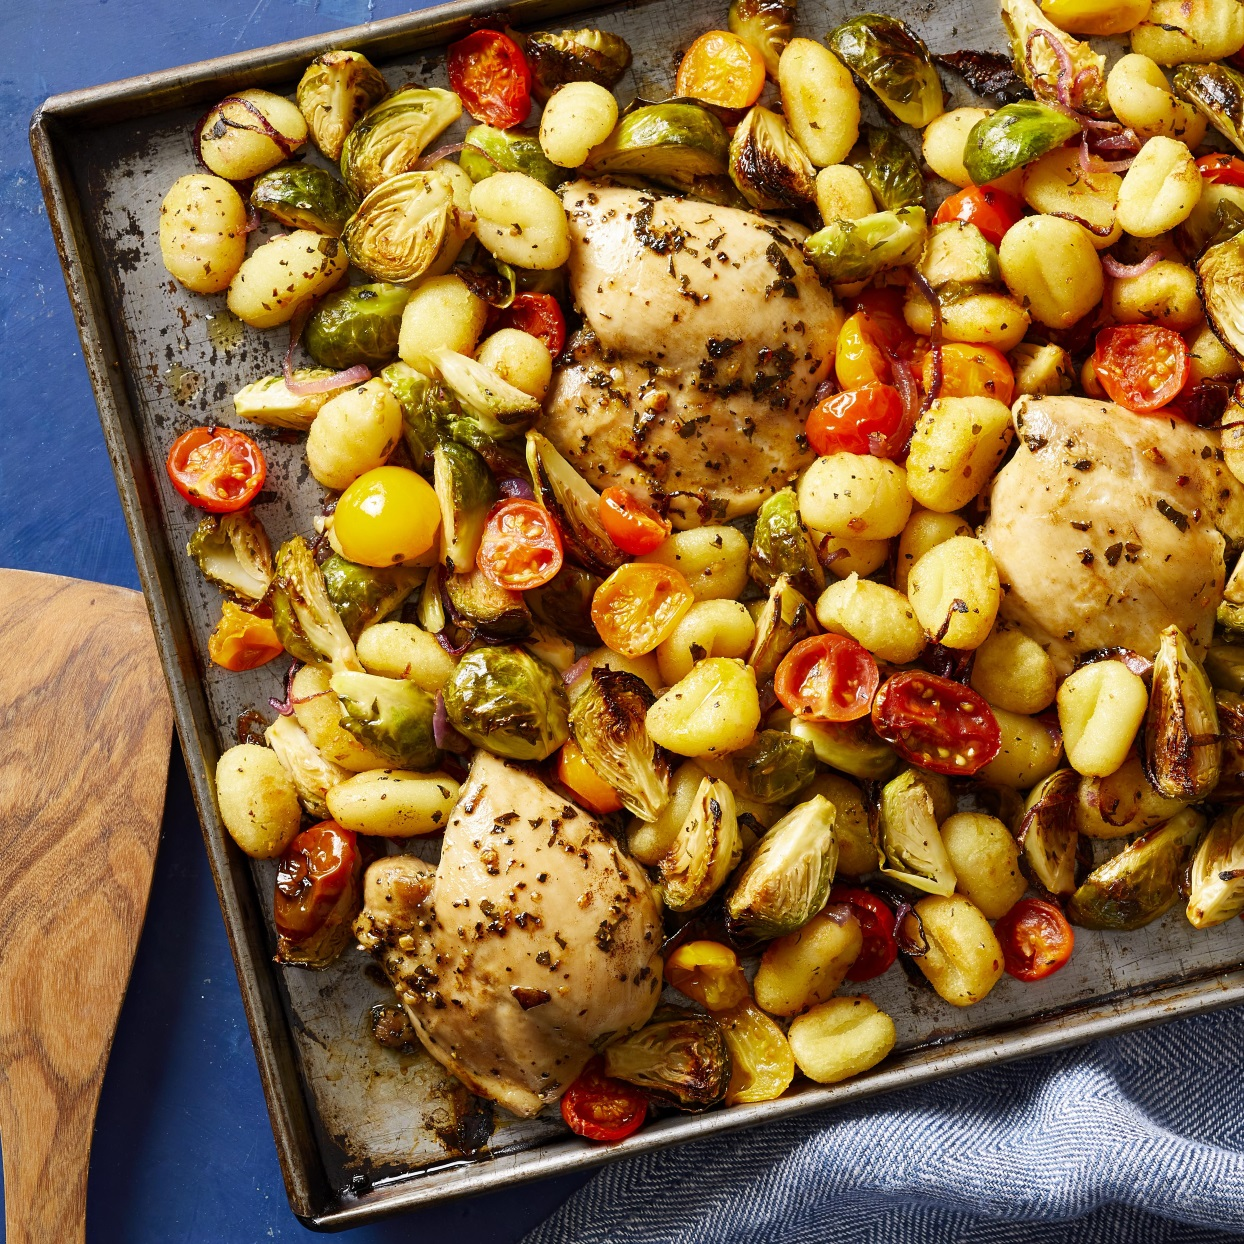 In this healthy dinner recipe, chicken thighs, Brussels sprouts, cherry tomatoes and packaged gnocchi are all roasted on the same sheet pan for a complete meal that couldn't be easier to make. And though it's simple, this dish gets tons of flavor from Mediterranean seasonings, including garlic, oregano and red-wine vinegar. It all adds up to a dish that's ready to go into heavy weeknight rotation in your house. Source: EatingWell.com, September 2019